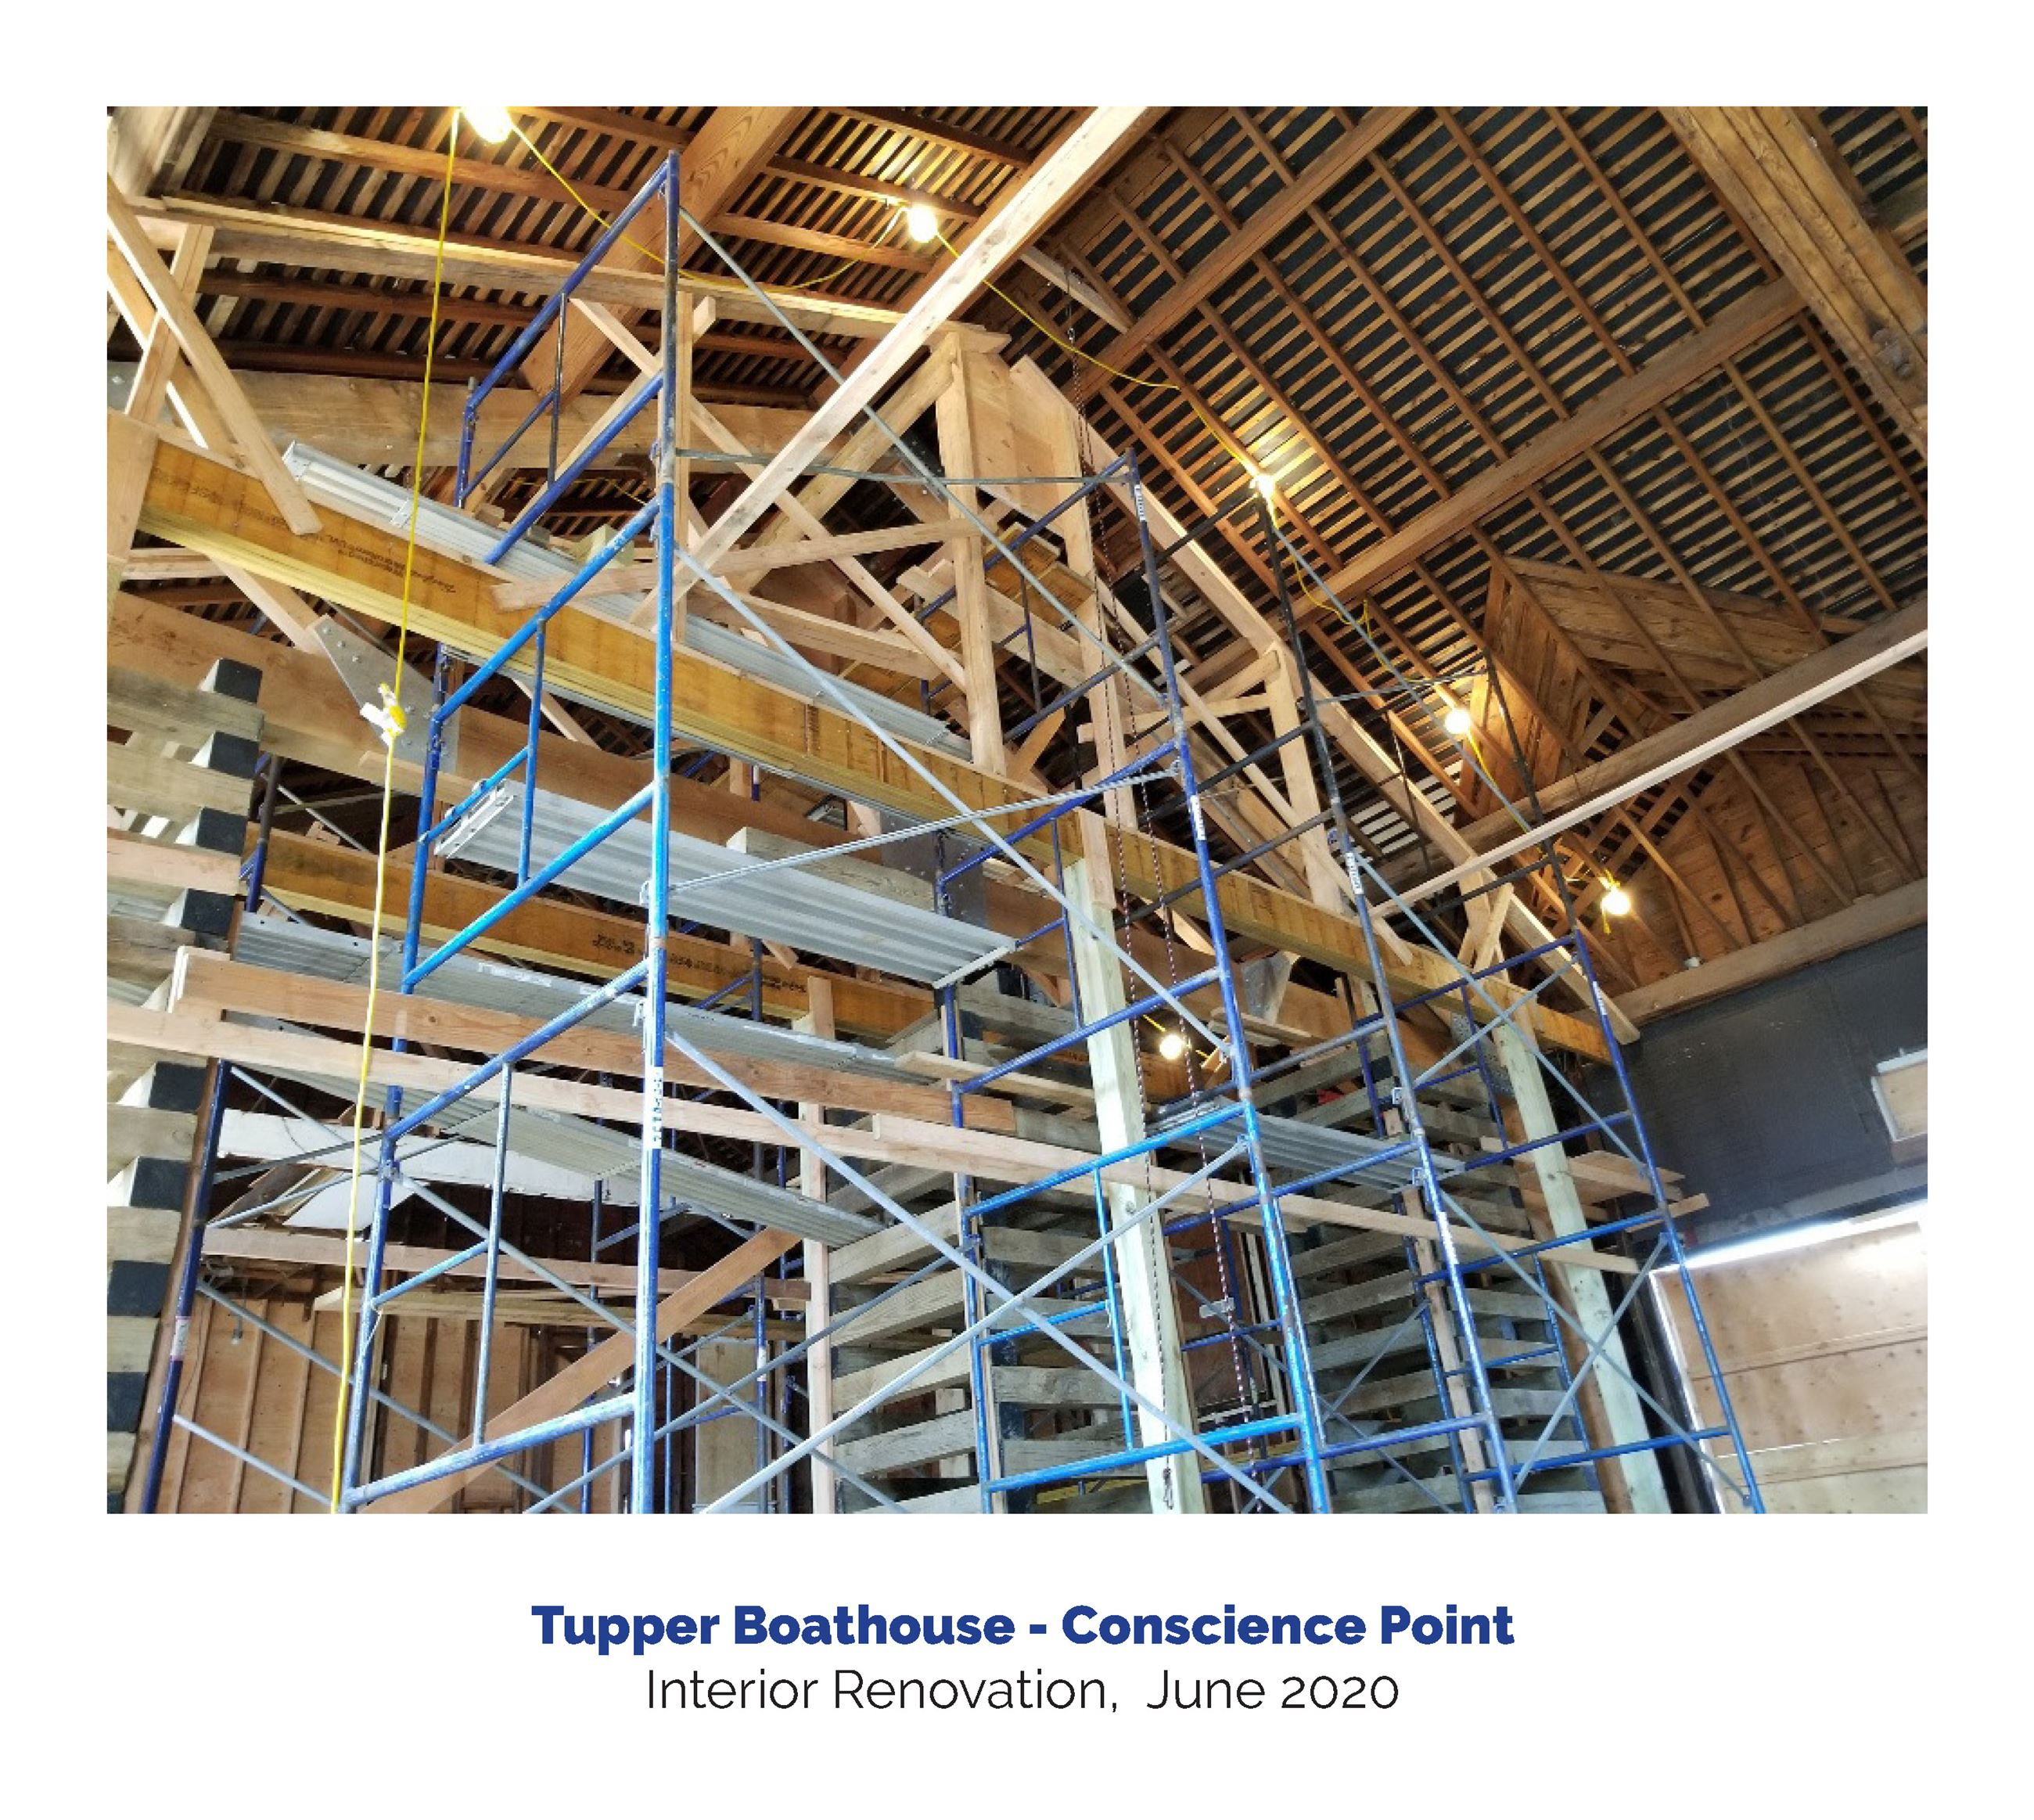 Tupper-Boathouse_06-2020 7